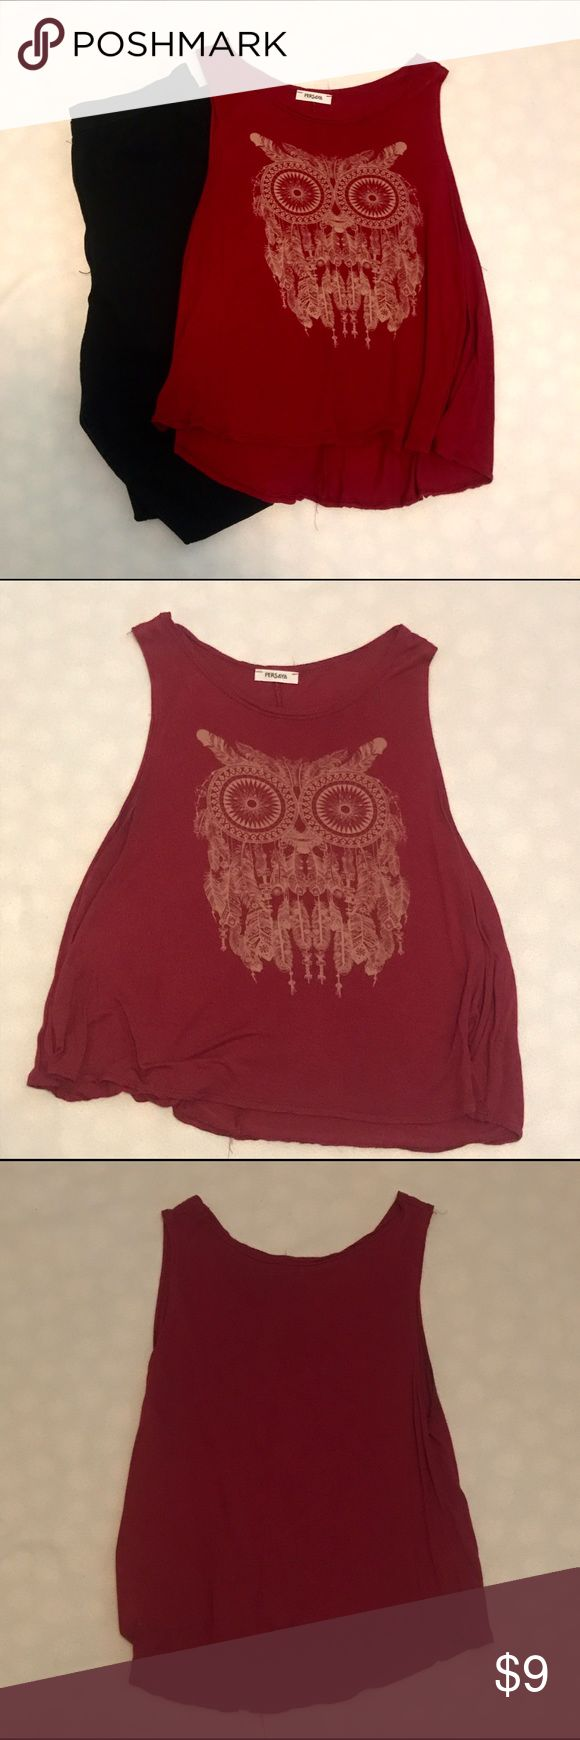 Owl feather top Super cute owl top. One of my favorites. Has a stretchy material. The shirt is maroon persaya Tops